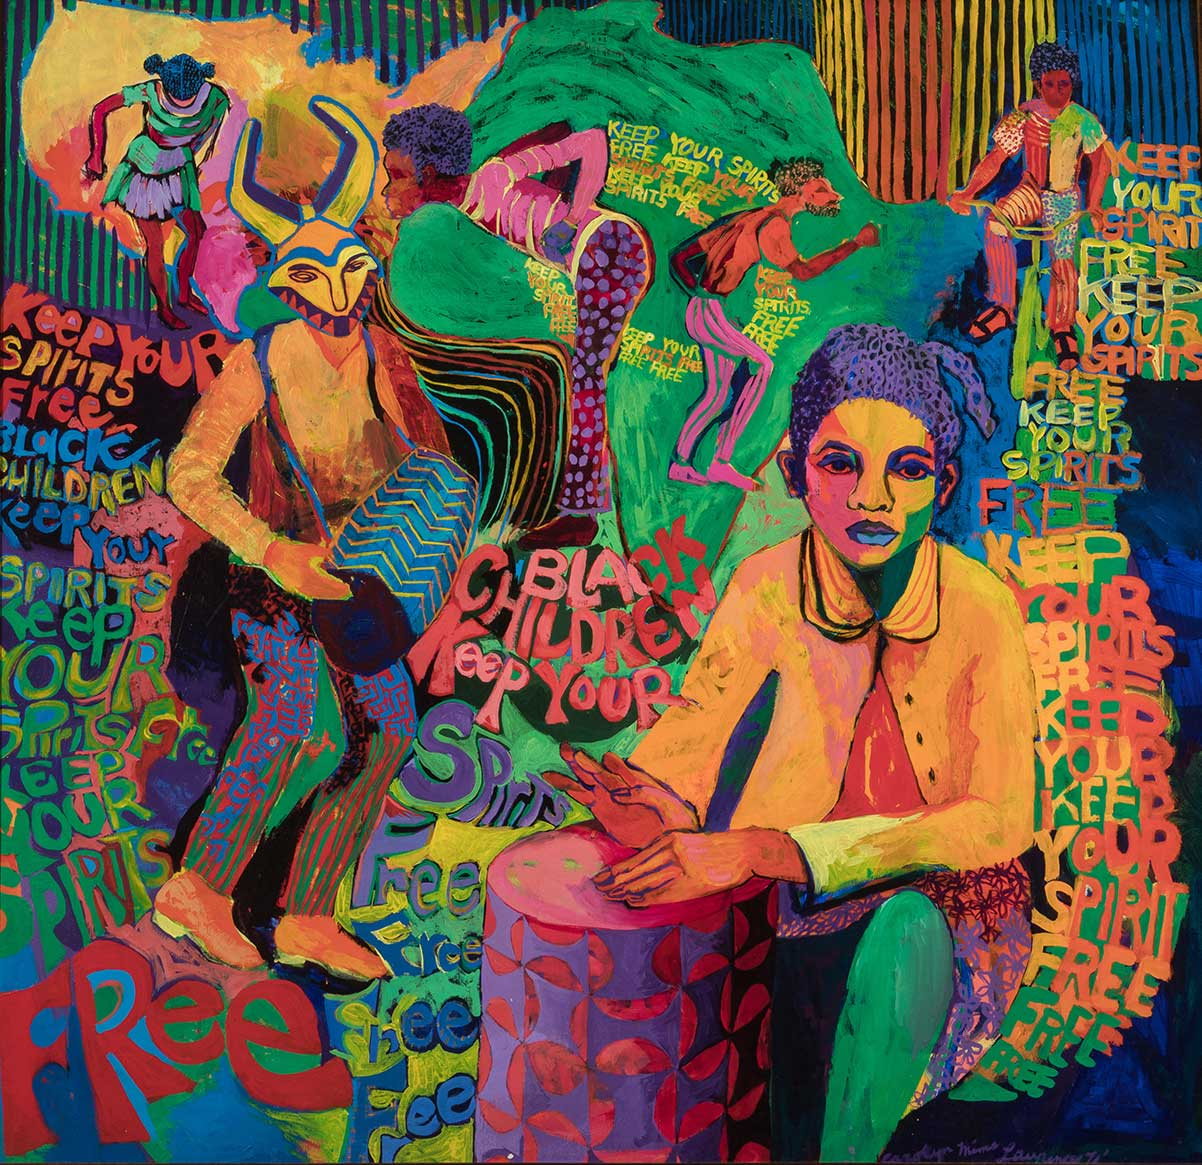 Carolyn Lawrence, Black Children Keep Your Spirits Free, 1972. Acrylic on canvas. 49 x 51 x 2 in. Image courtesy of the artist. | Carolyn Mims Lawrence